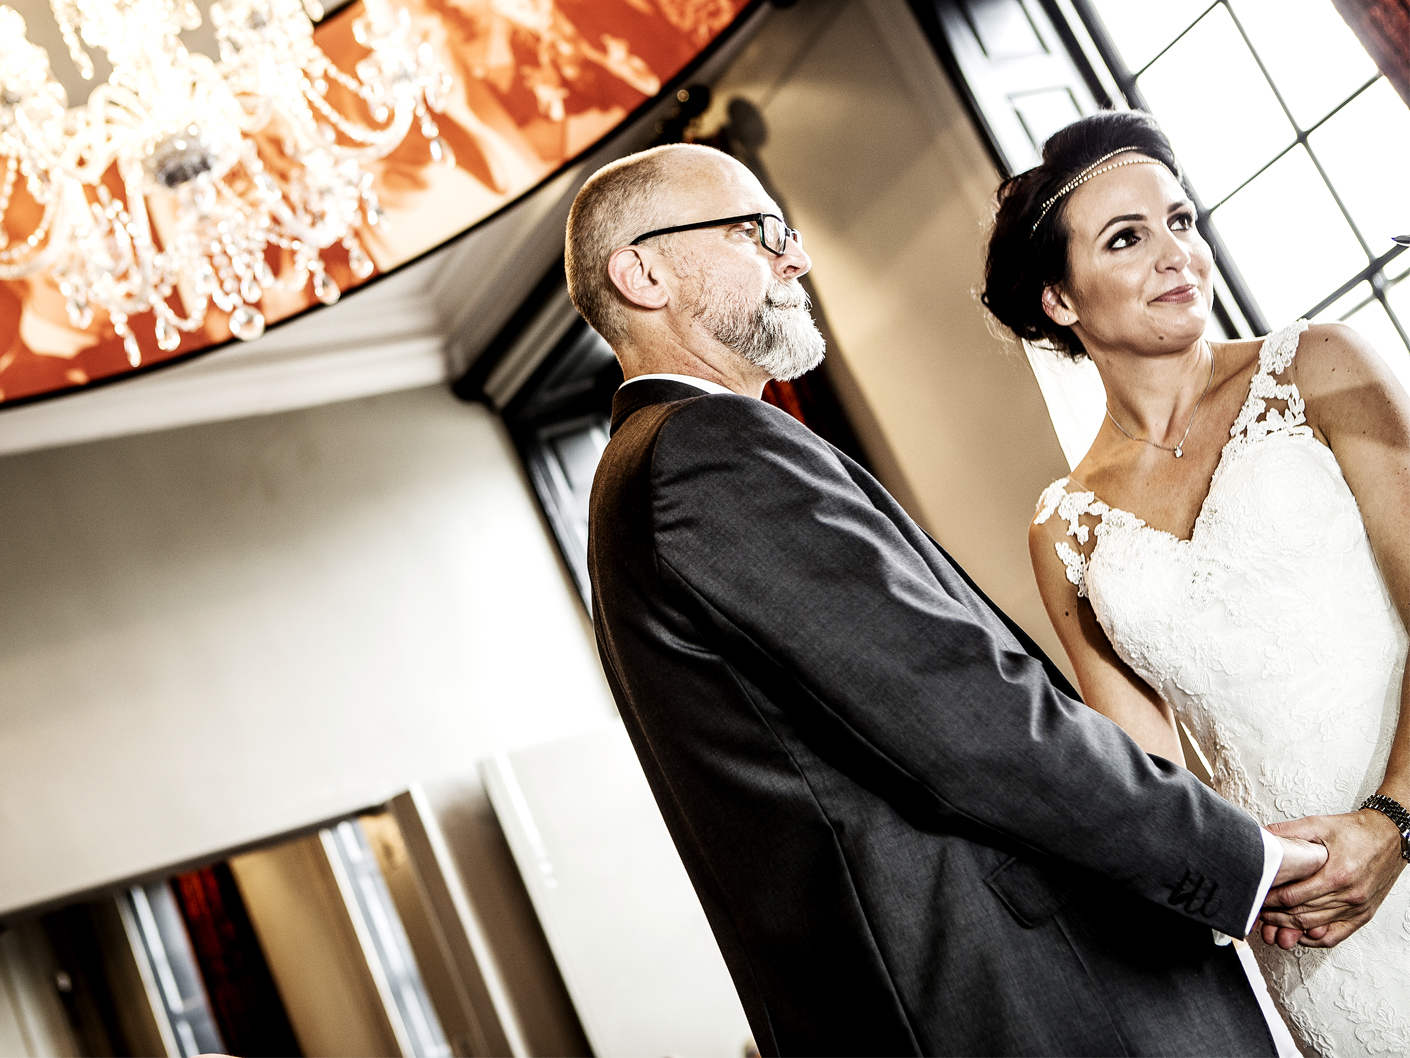 wedding-photography-of-the-ceremony-at-The-Oddfellows-Hotel-Chester-in-Cheshire